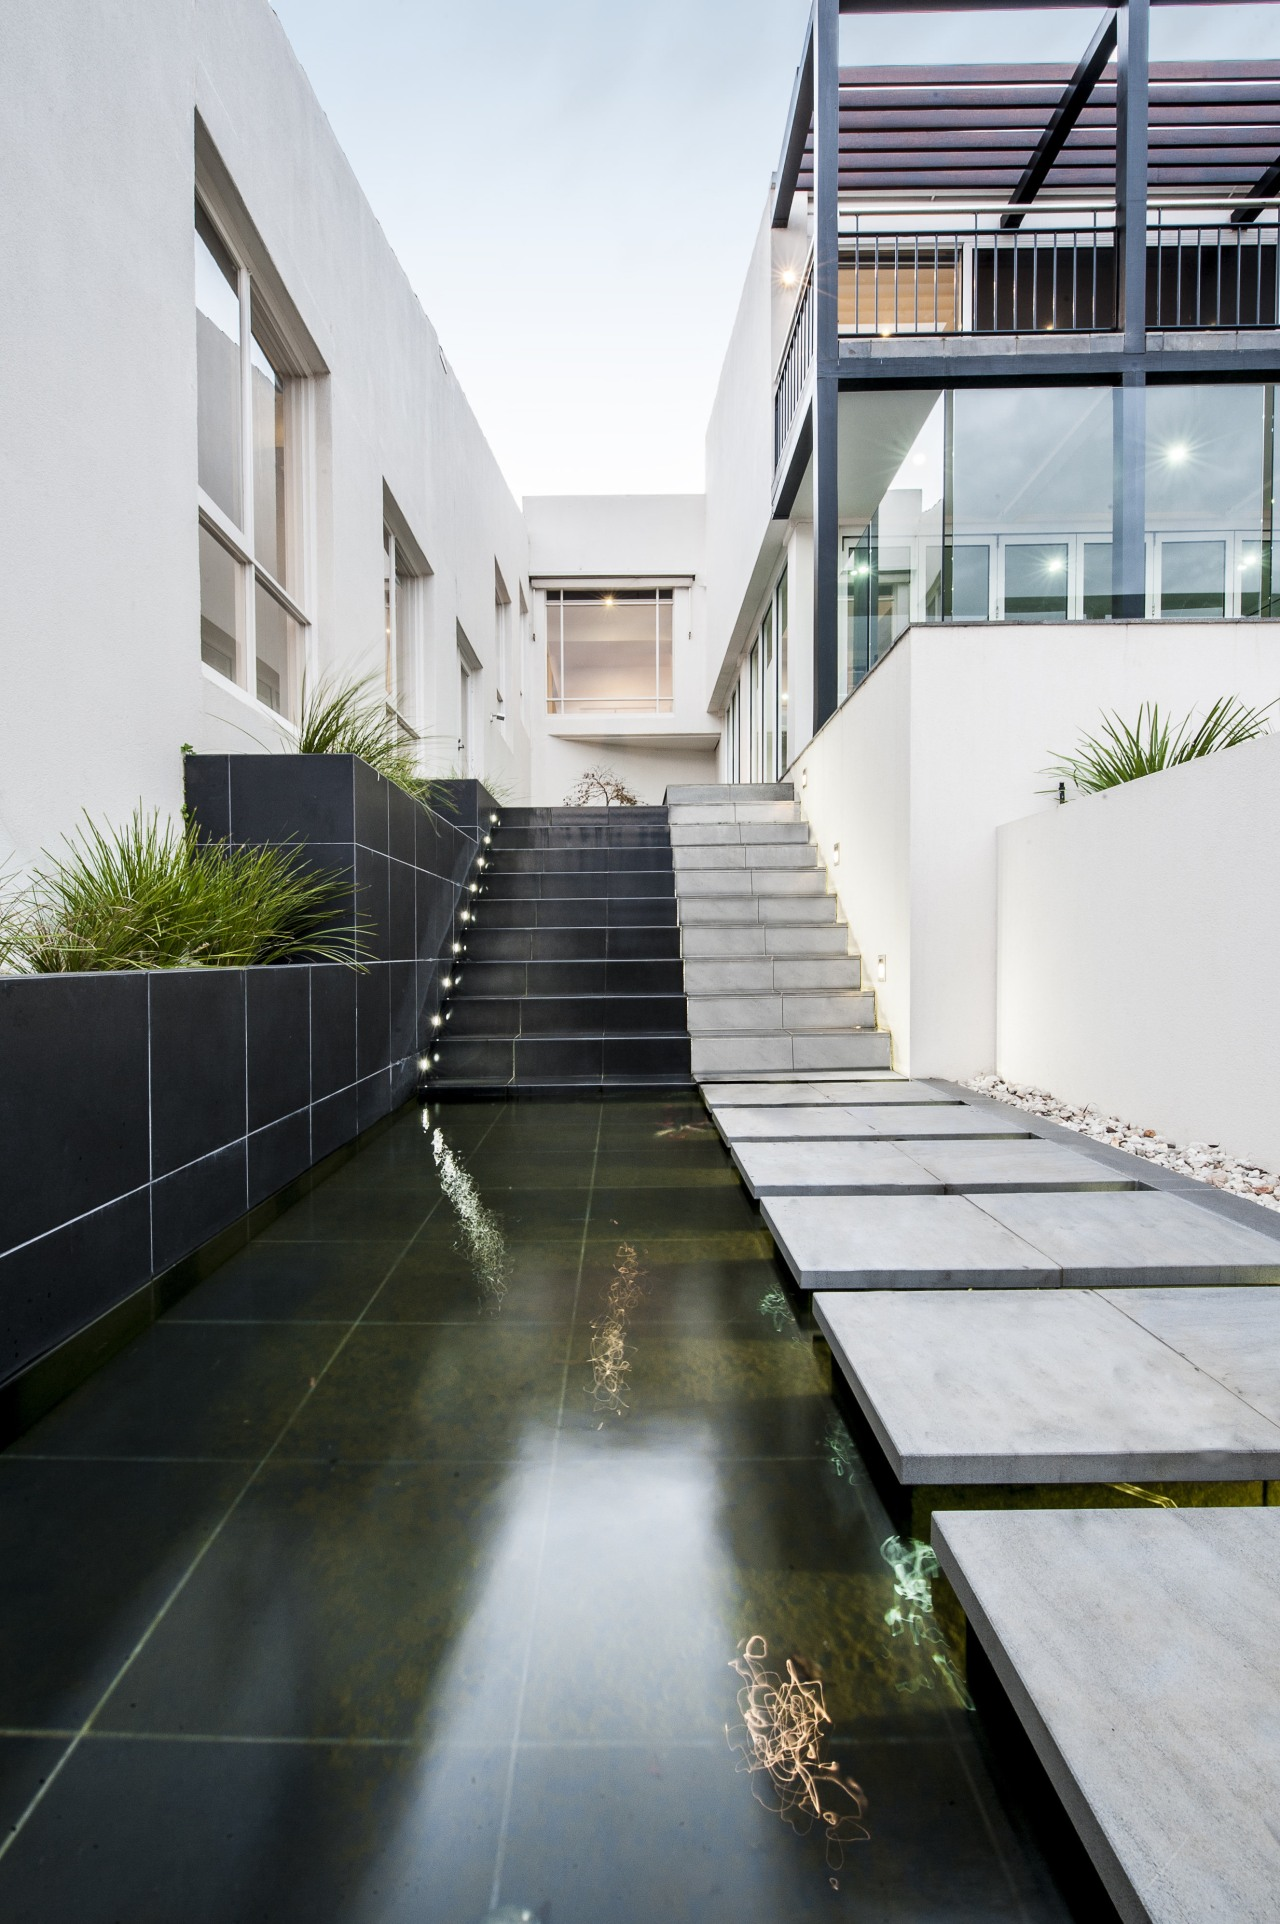 A water feature, lined with dark tiles, provides apartment, architecture, building, condominium, daylighting, estate, facade, home, house, property, real estate, reflection, residential area, white